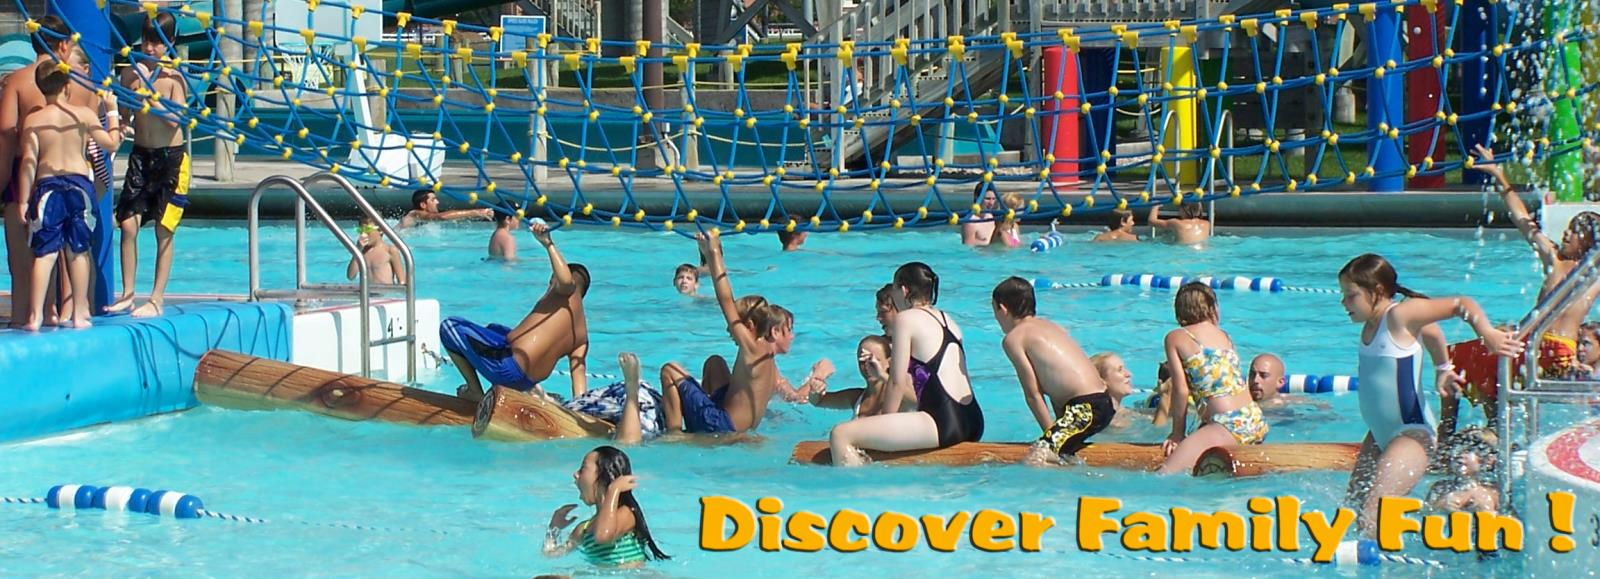 Island Oasis Water Park | City of Grand Island, NE